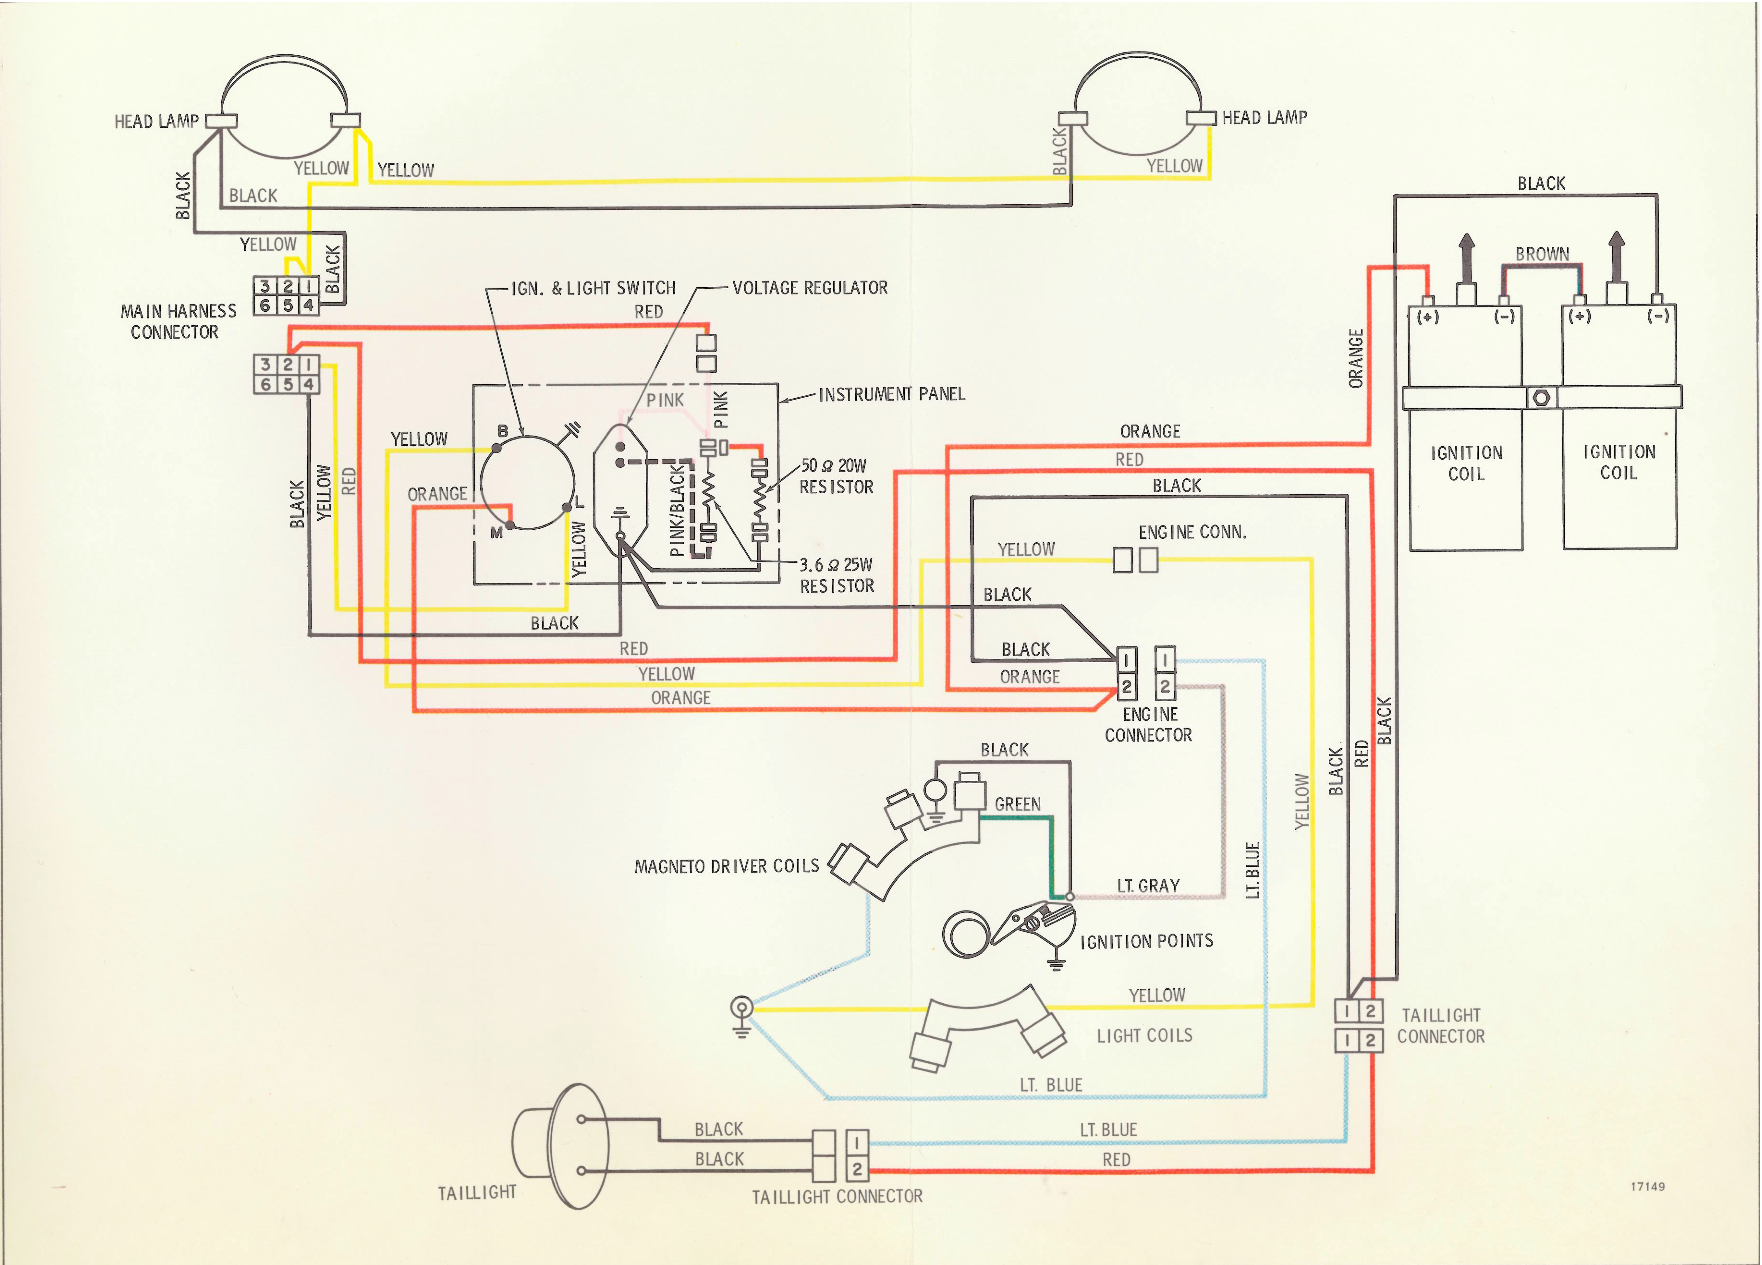 Bobcat 600 Wiring Diagram | Wiring Diagram on bobcat 763 fuel system diagram, bobcat ignition switch diagram, bobcat 331 fuel solenoid wiring, dixie chopper diagram, bobcat t190 parts diagram, bobcat controls diagram, bobcat s175 movement diagram, bobcat 863 parts diagram, bobcat oil cooler, circuit diagram, bobcat 753 electrical diagram, bobcat 773 parts diagram, bobcat service, bobcat filter diagram, bobcat starter diagram, miller bobcat 250 parts diagram, bobcat 7 pin diagram, bobcat 650 parts diagram, bobcat wiring harness adapter, bobcat cooling diagram,